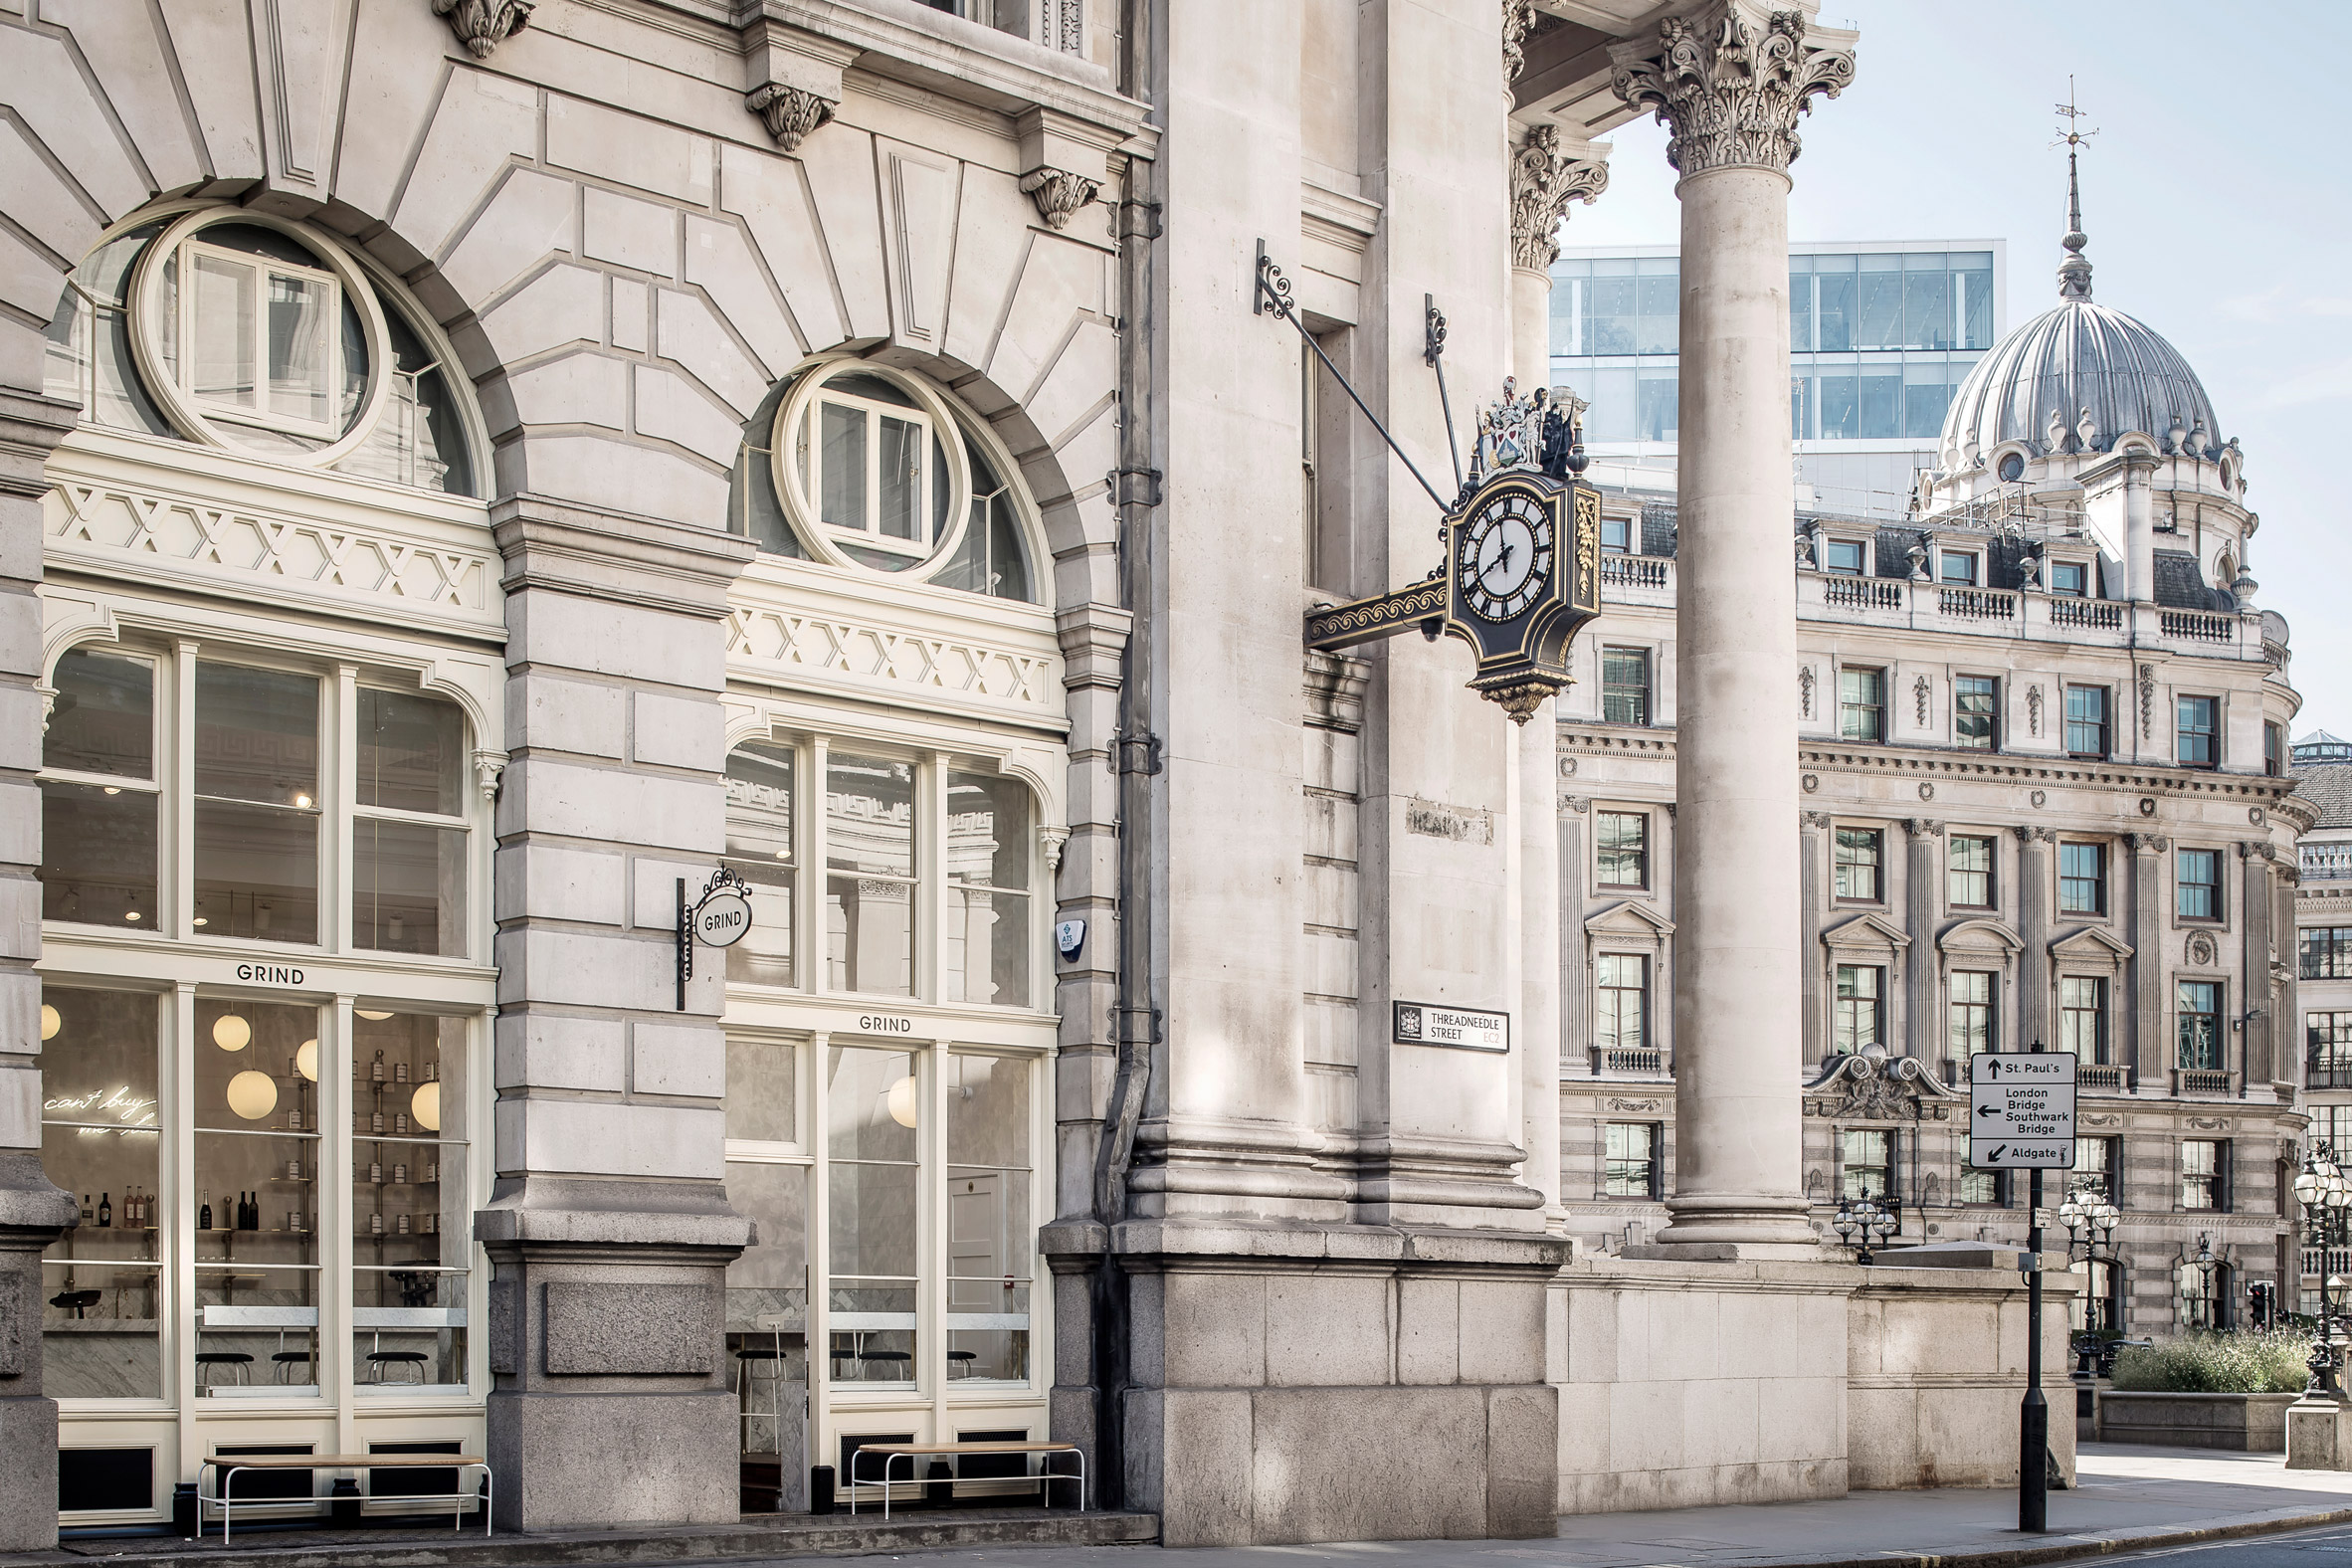 Biasol designs marble-rich cafe in historic London stock exchange